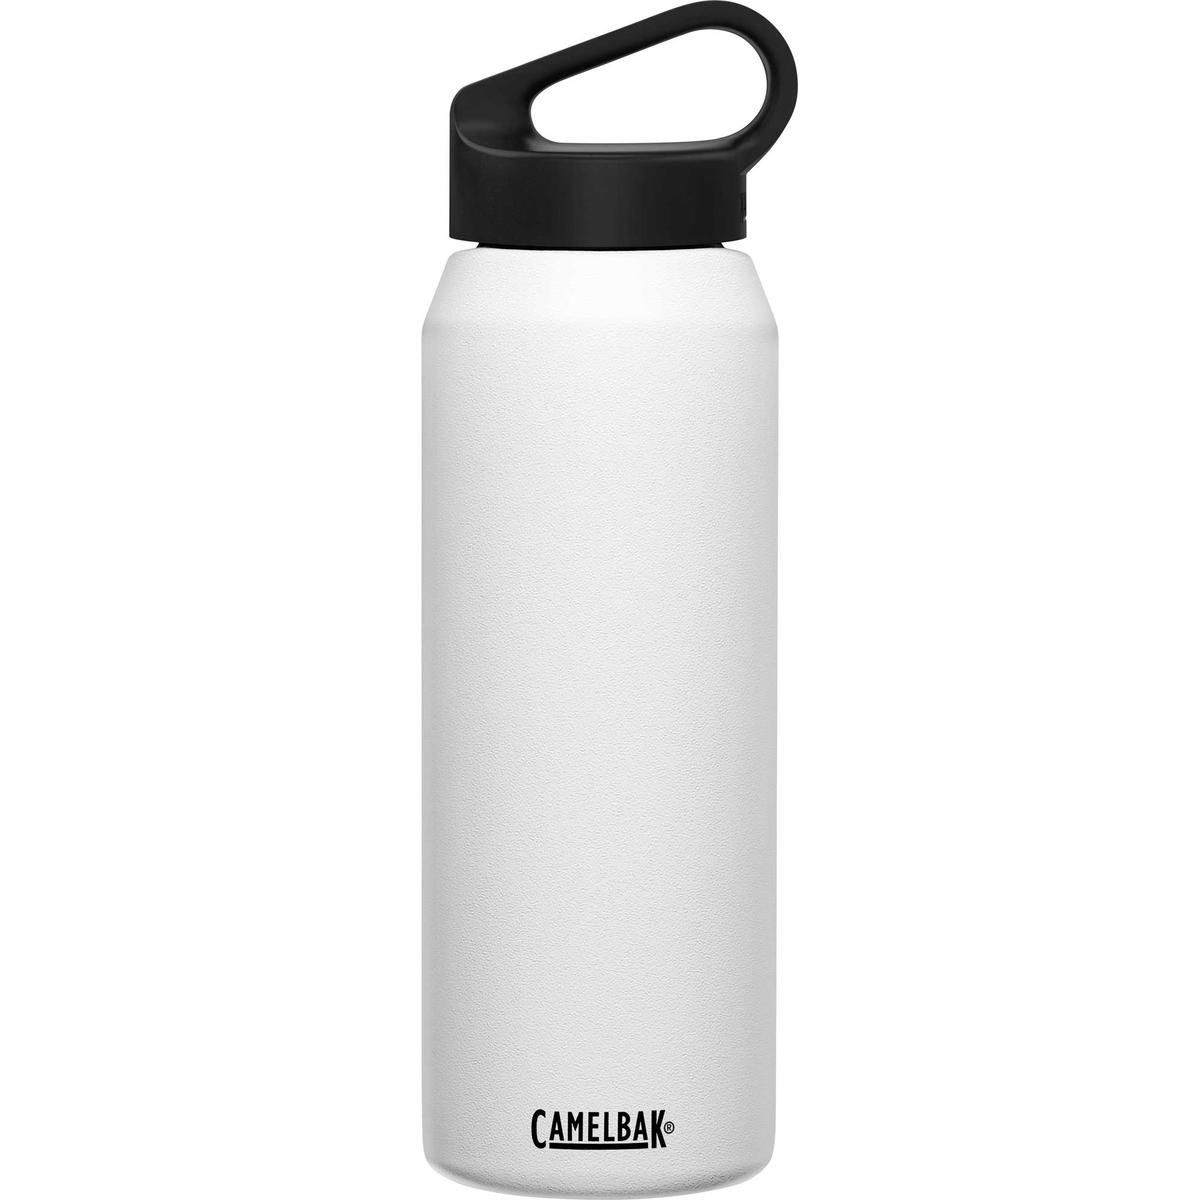 Camelbak Carry Cap 32oz Insulated Stainless Steel  Waterbottle